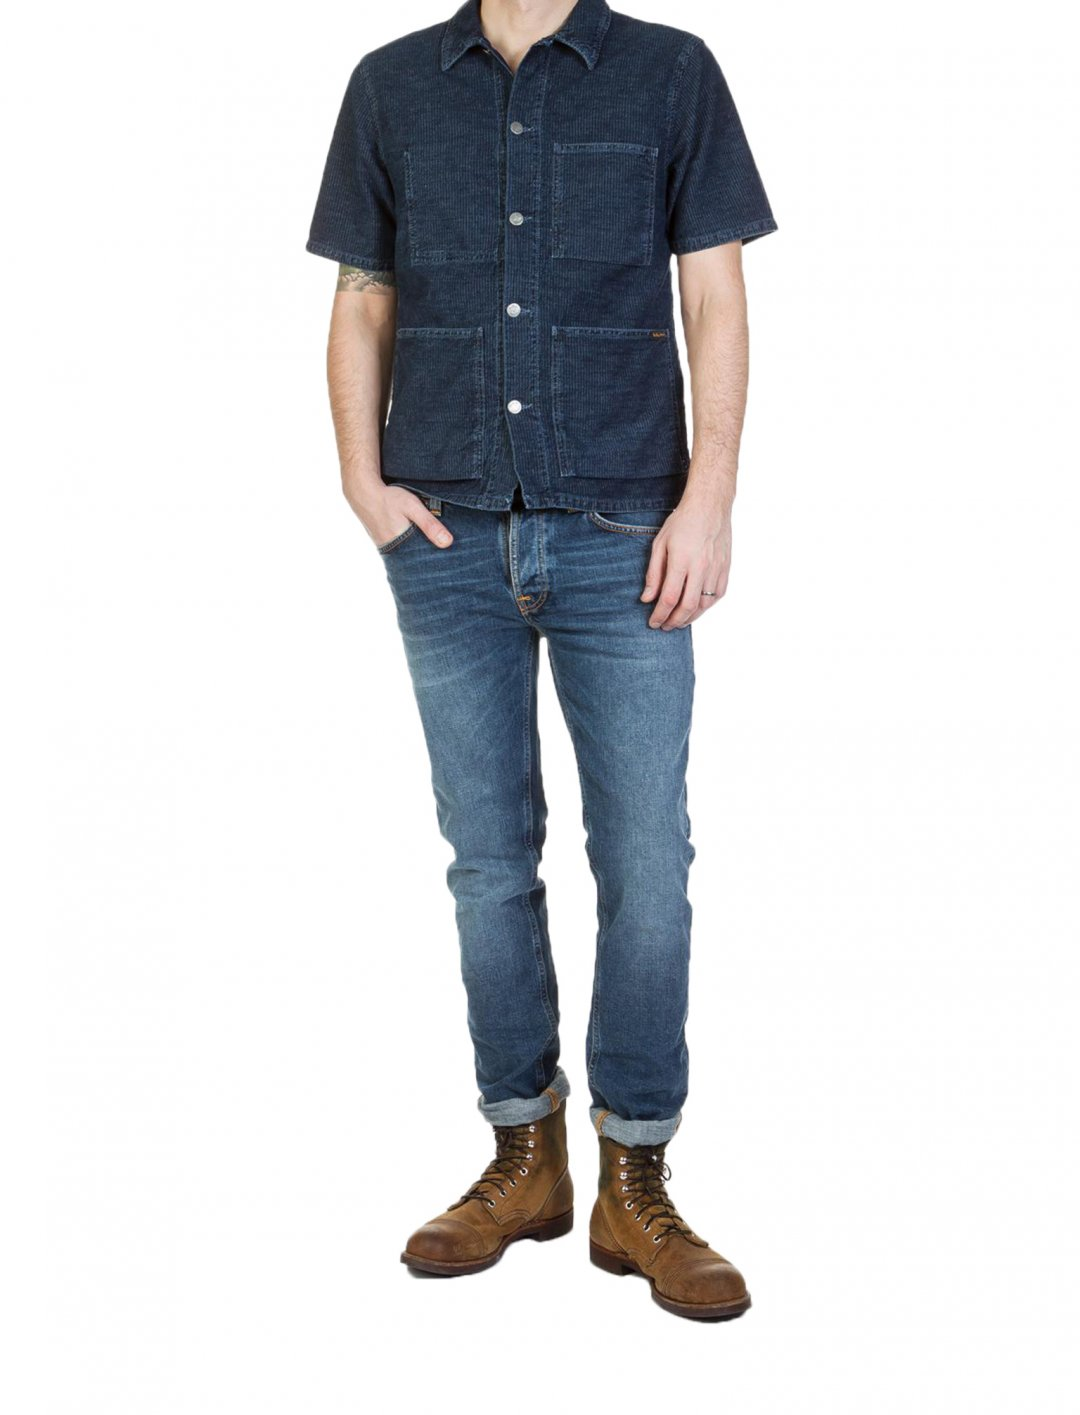 """Nudie Jeans Short Sleeve Shirt {""""id"""":5,""""product_section_id"""":1,""""name"""":""""Clothing"""",""""order"""":5} Nudie Jeans"""